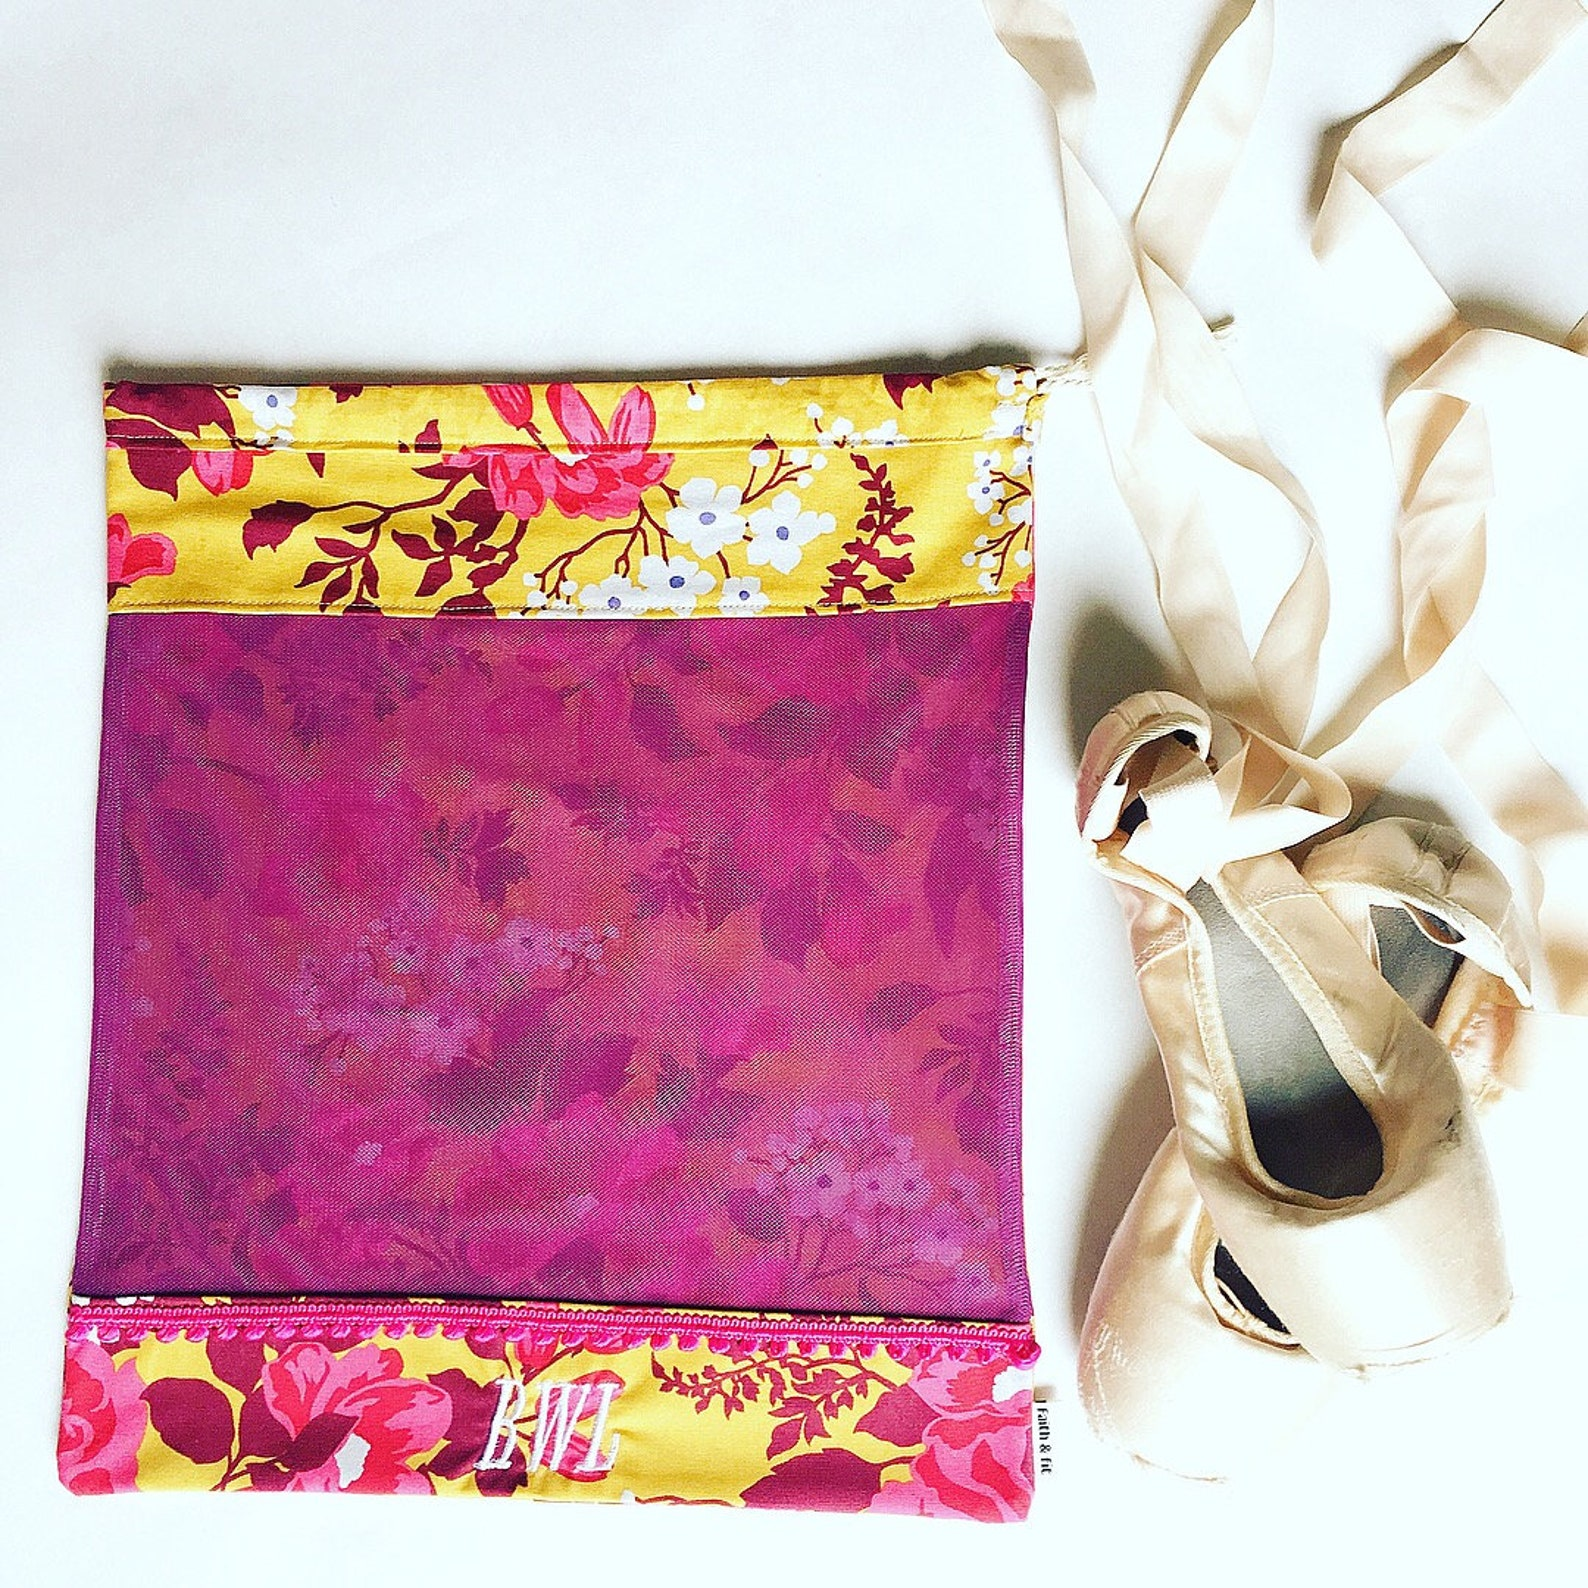 pointe shoe bag, ballet shoe bag, dance bag purple, yellow, ballerina bag